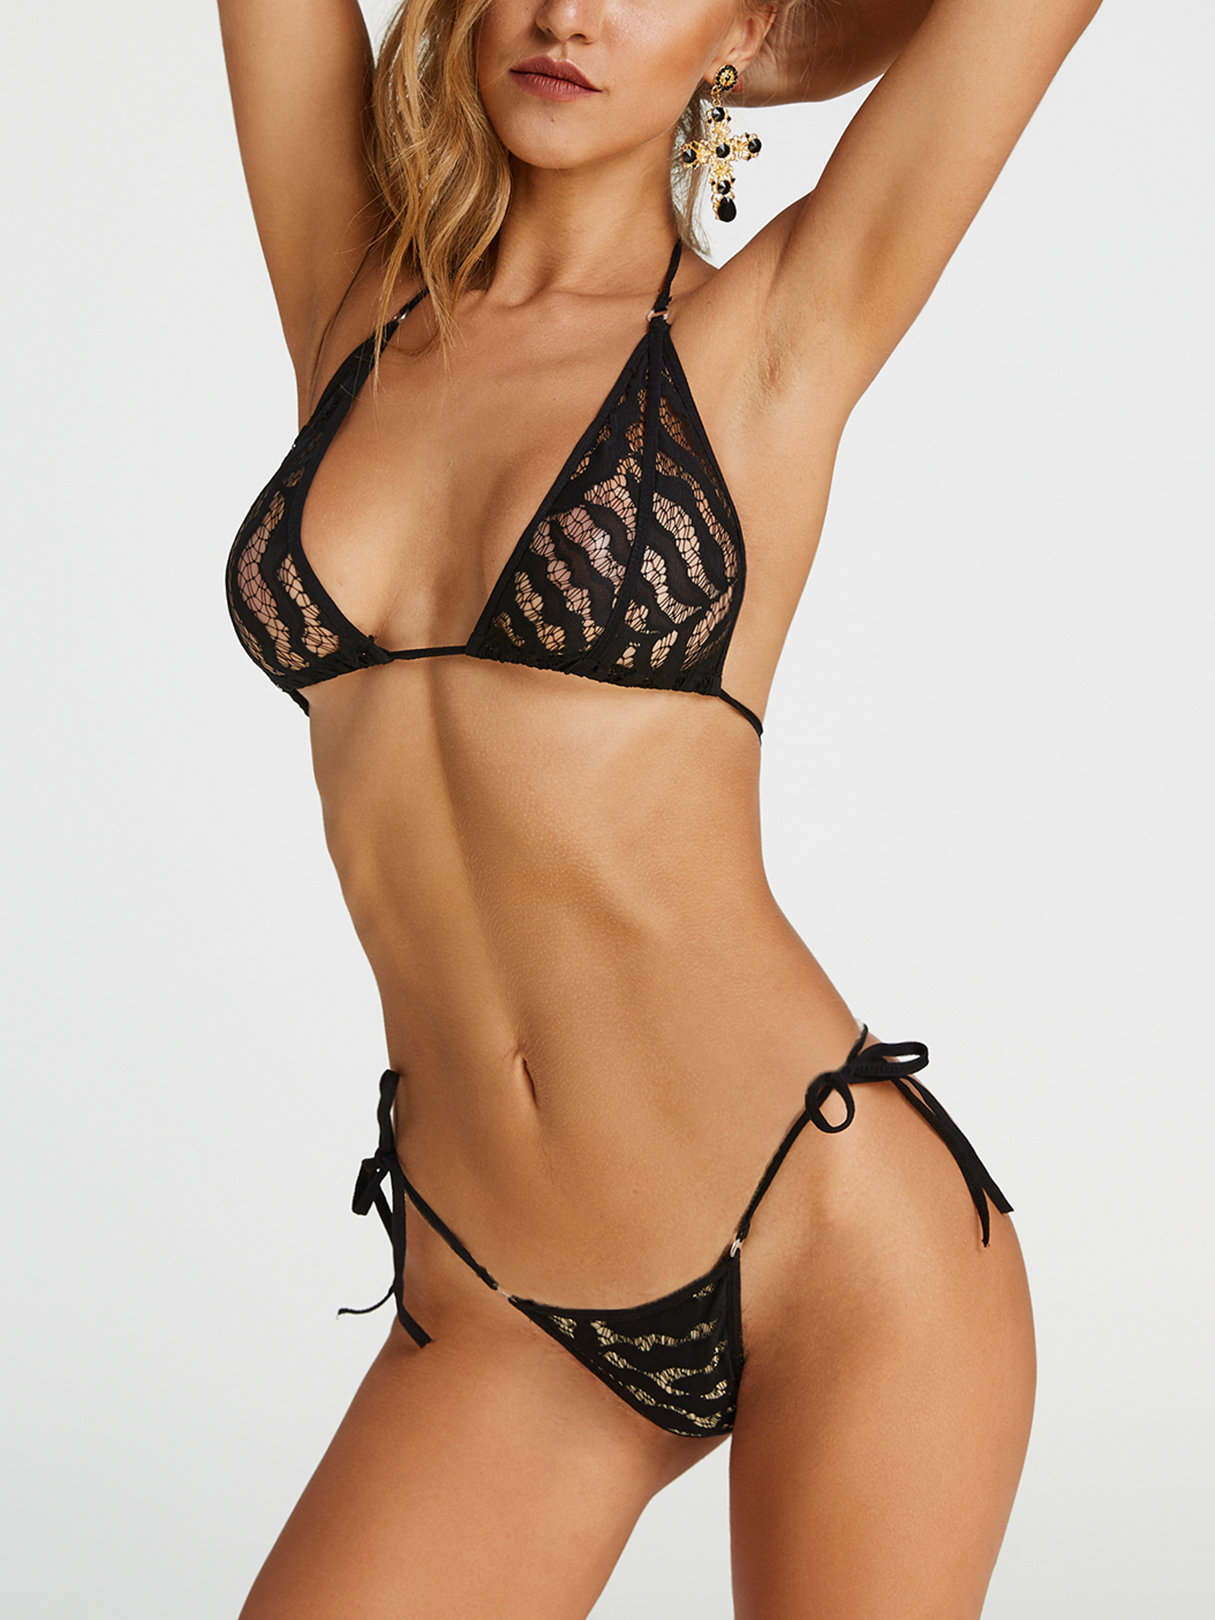 Black Sexy Lace Triangle Strings Bikini Set super sonico anime alphamax skytube black pvc action figure 26cm swimwear can undress clothes sexy figure model collection toy